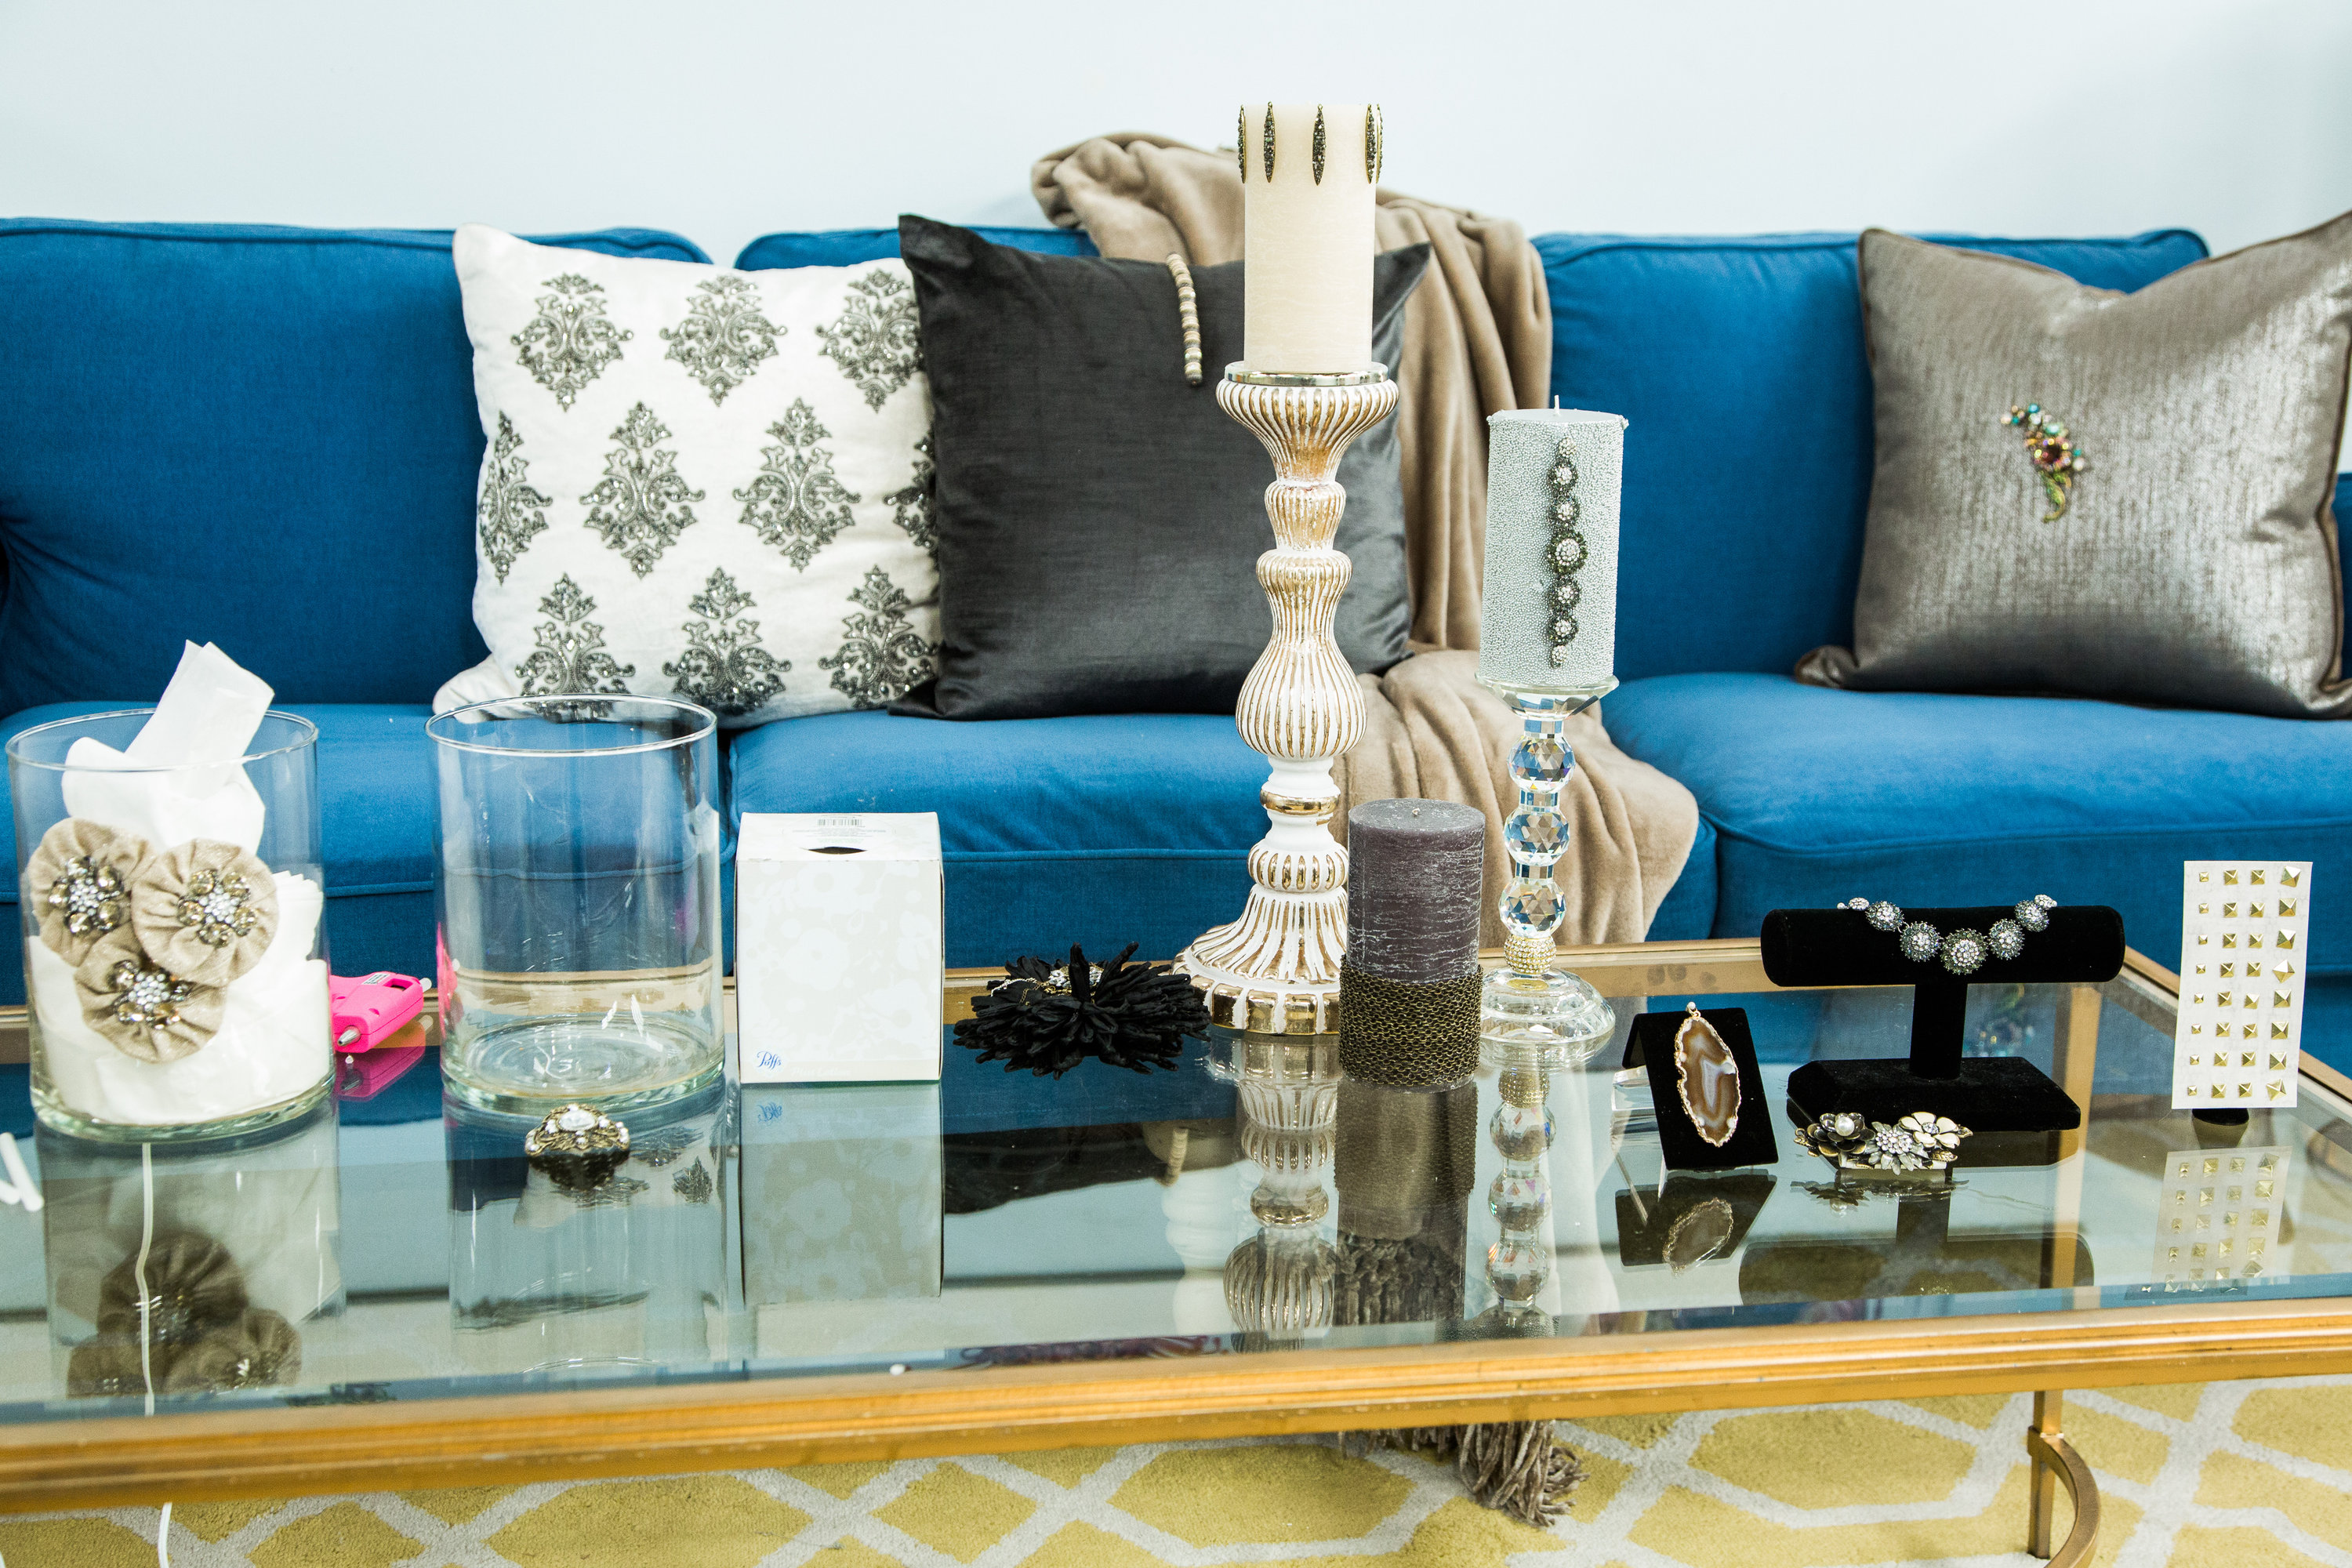 How To - Home & Family: DIY Home Projects